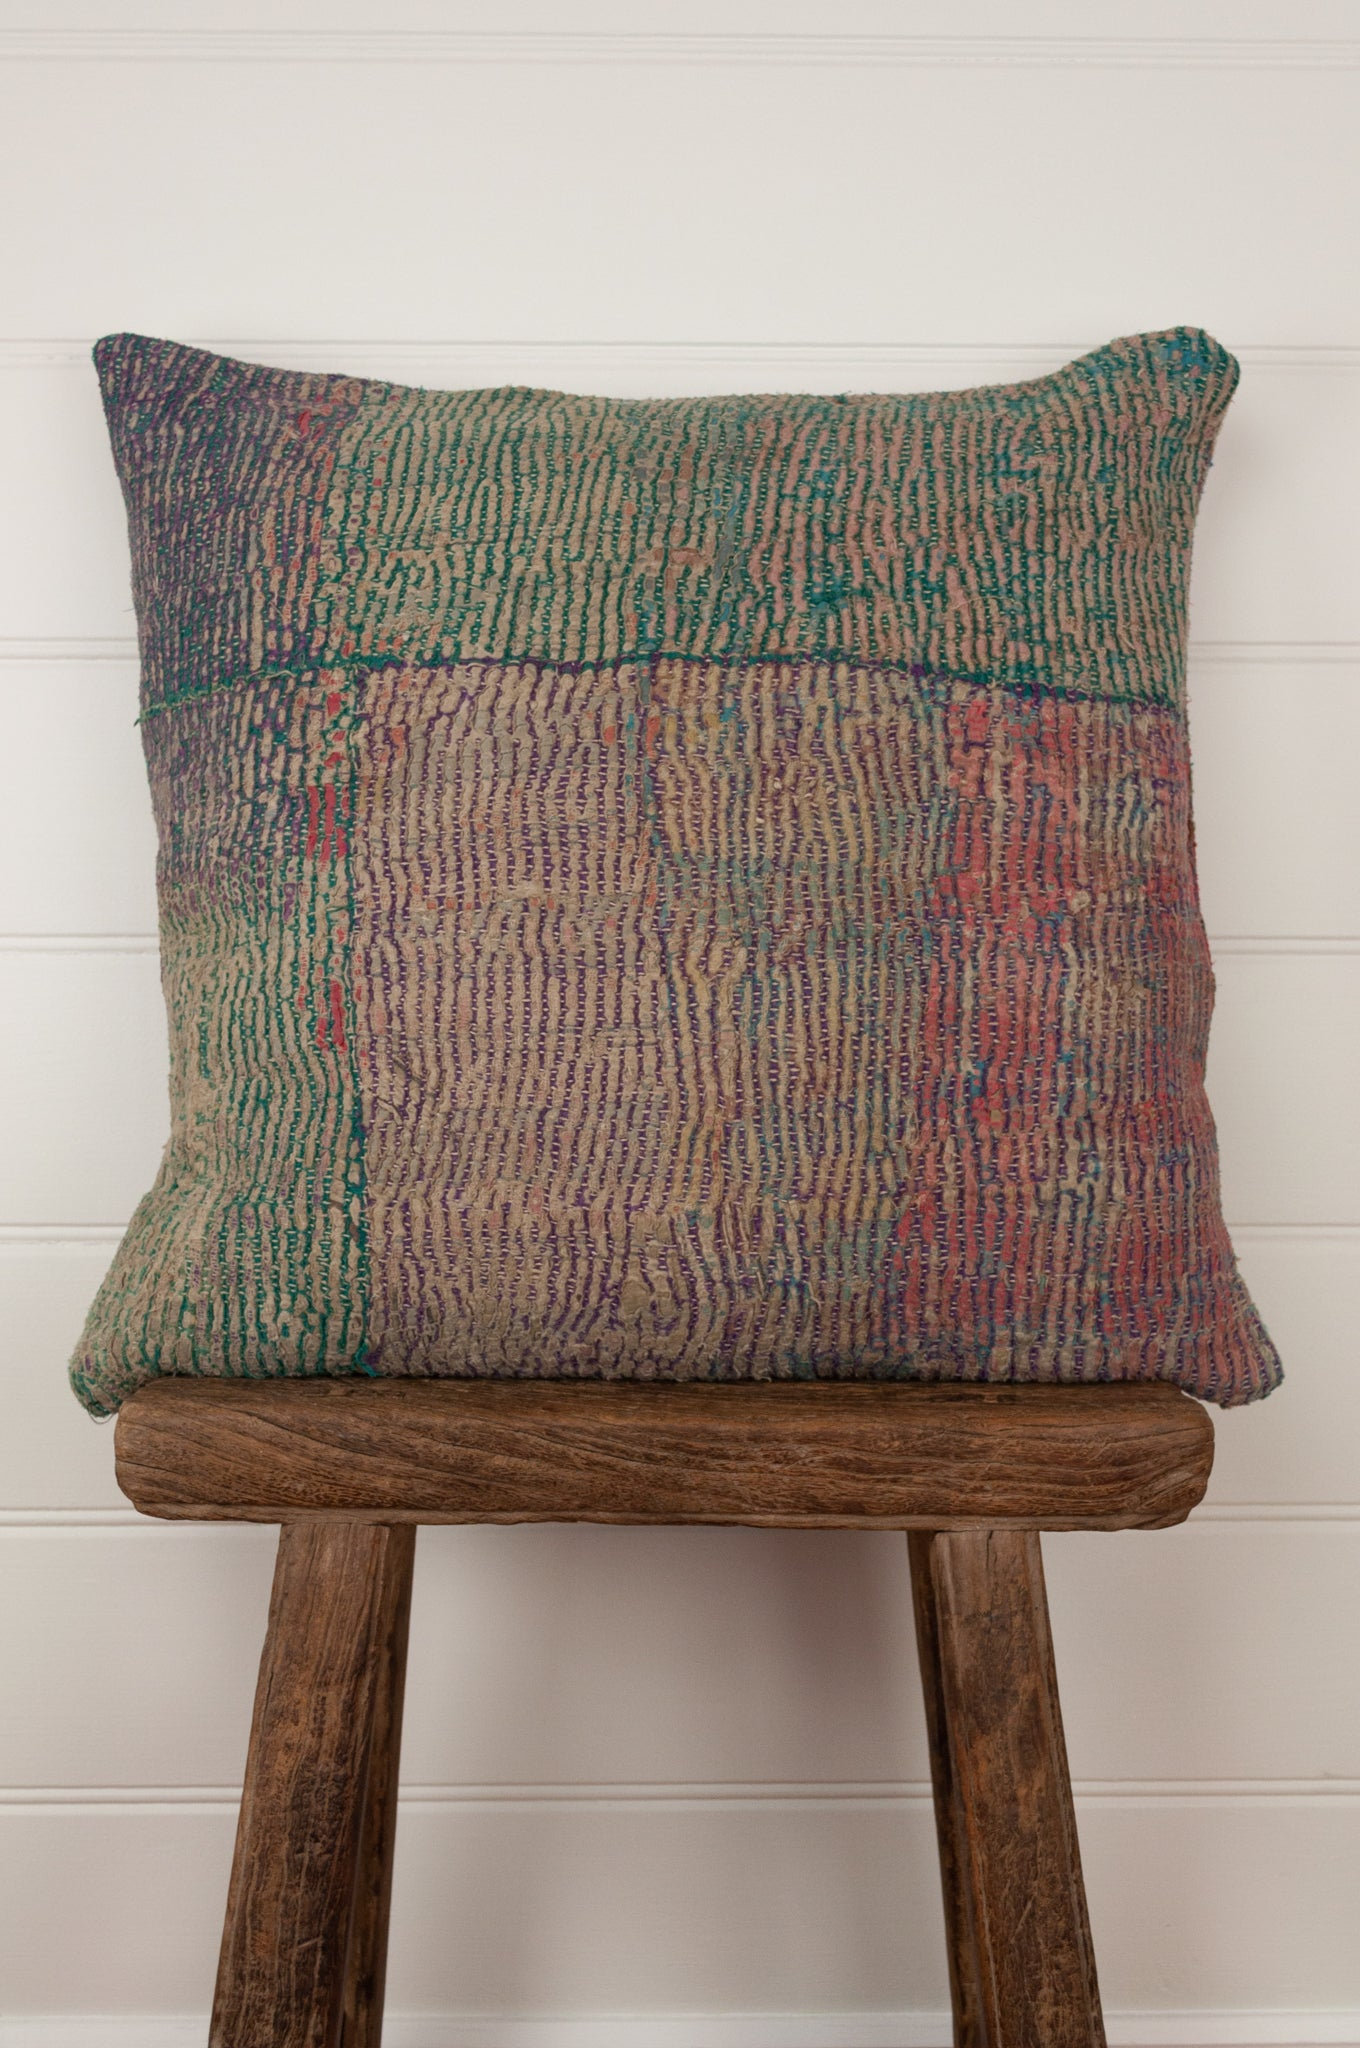 Vintage kantha cushion, in a bold palette of greens, pinks, blues and lilacs, 45cm x 45cxm.